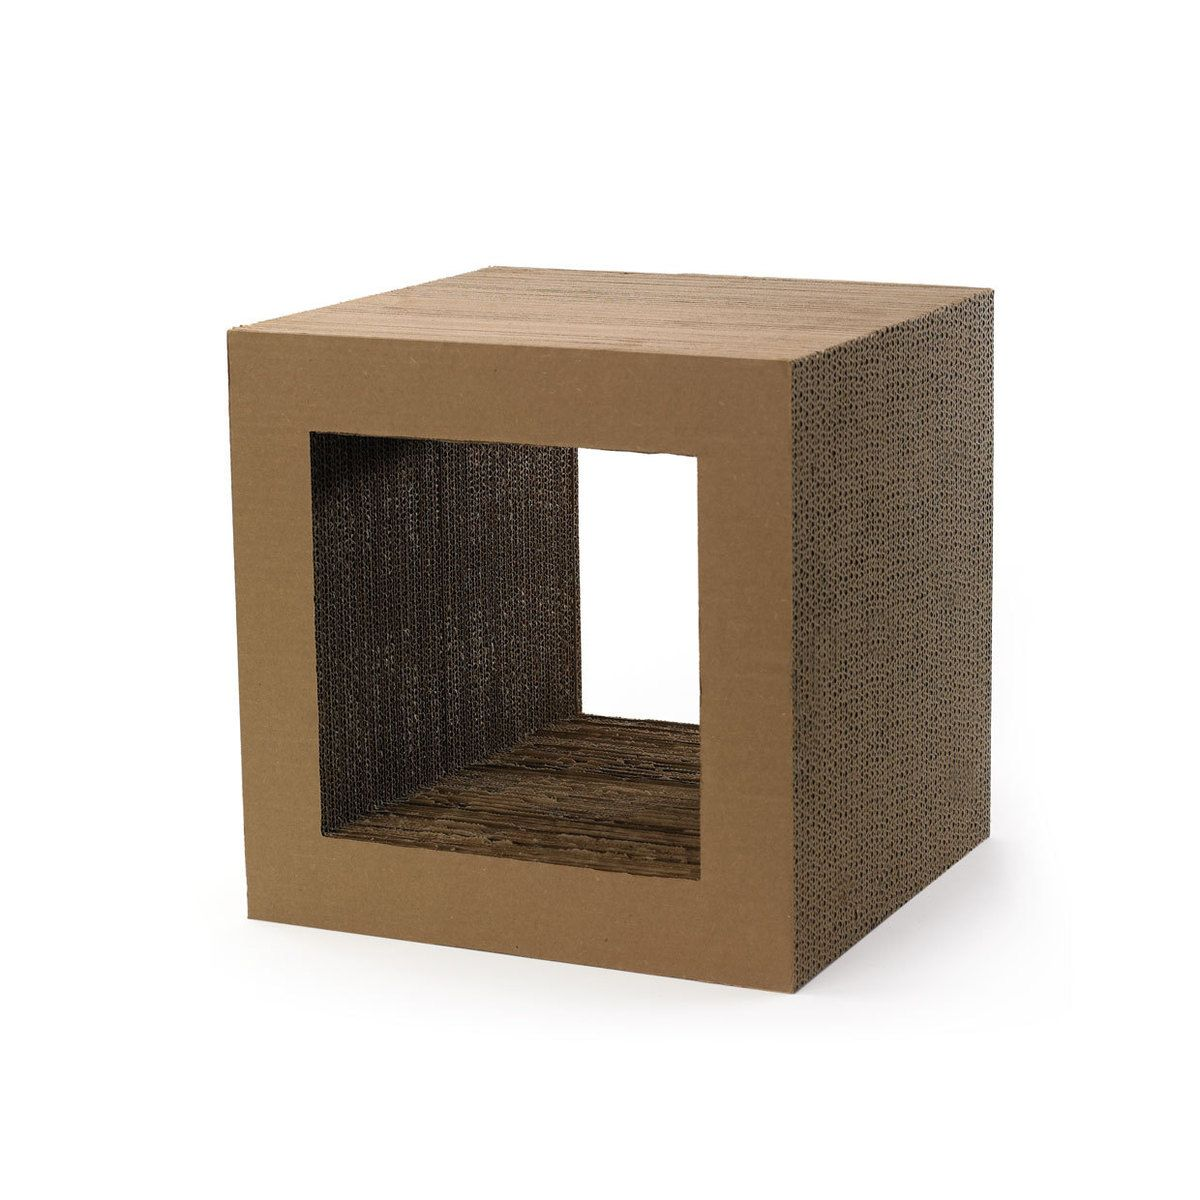 Kittyblock - Is your cat constantly enduring a chorus of NOs? Scratching the wall? NO! Scratching the carpet? NO! Investigating forbidden spaces? NO! Taking up a spot on the sofa when guests visit? NO! It's time you gift your cat with a resounding YES with the Kittyblock.